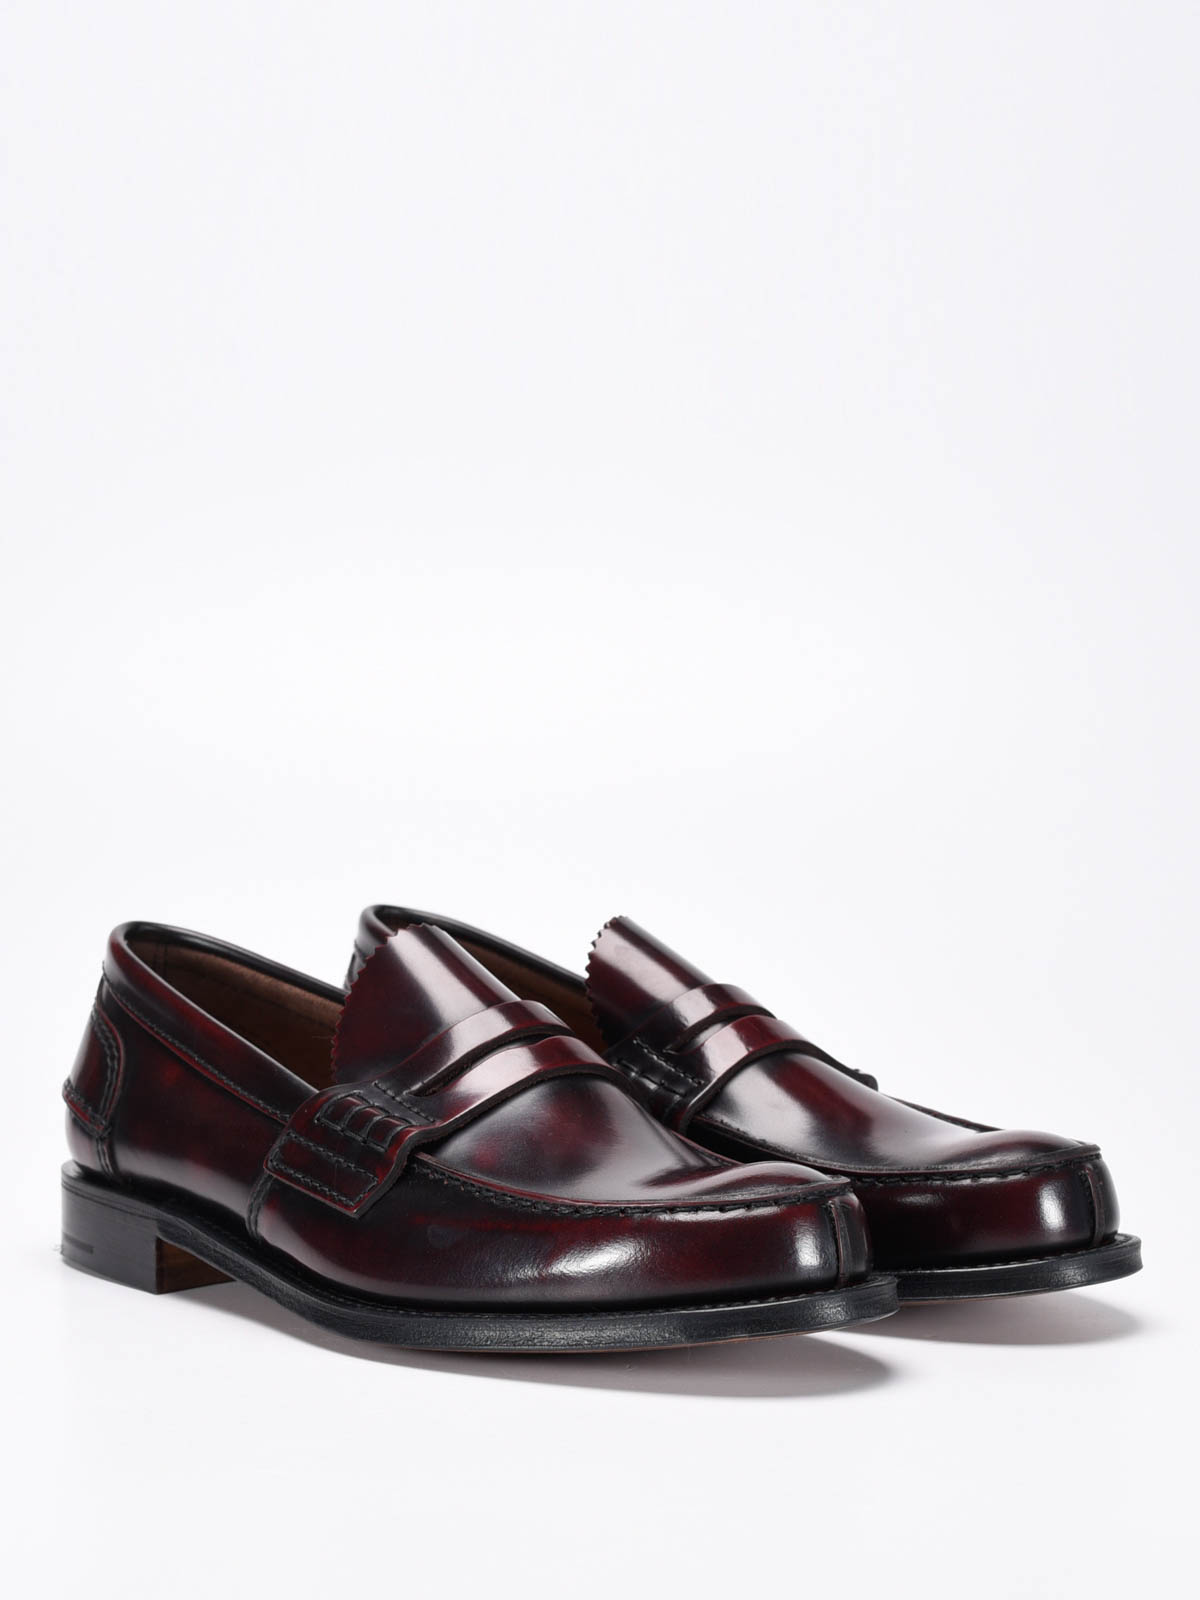 8c1fc20ae churchs-online-loafers--slippers-tunbridge-leather-loafers-00000100251f00s072.jpg